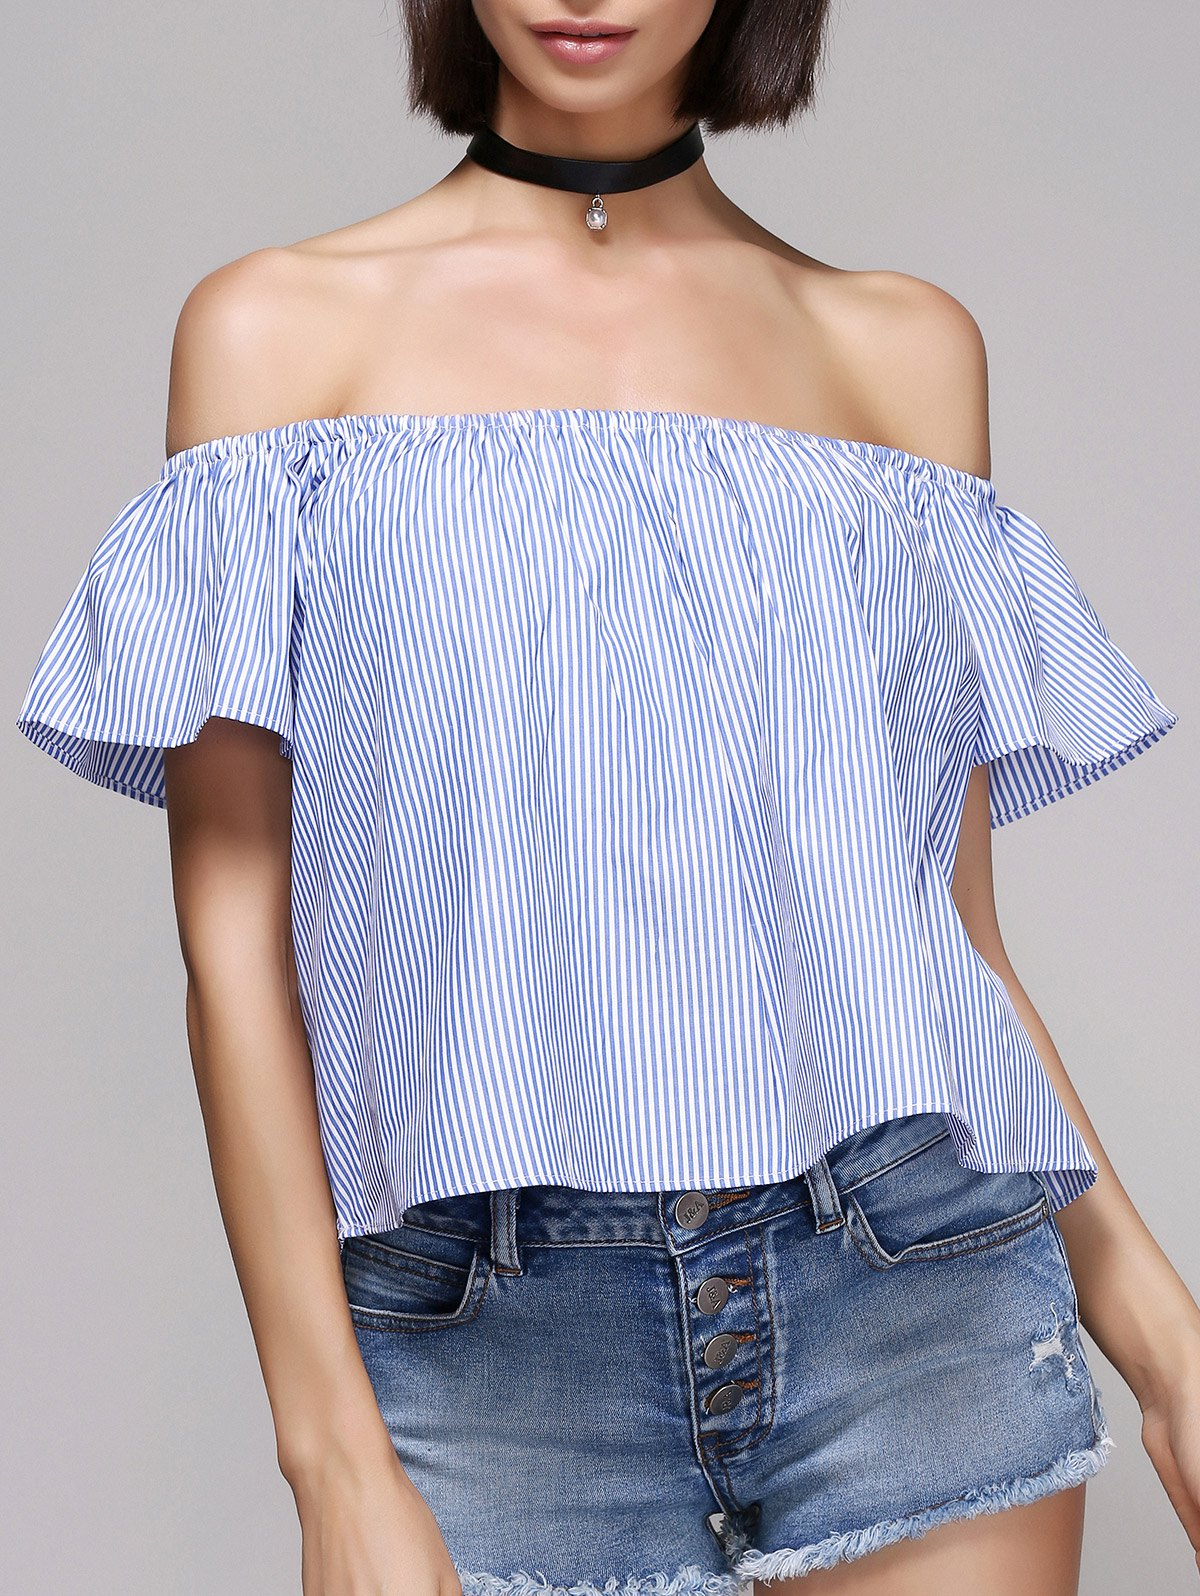 Stylish Pinstriped Off The Shoulder Blouse For Women